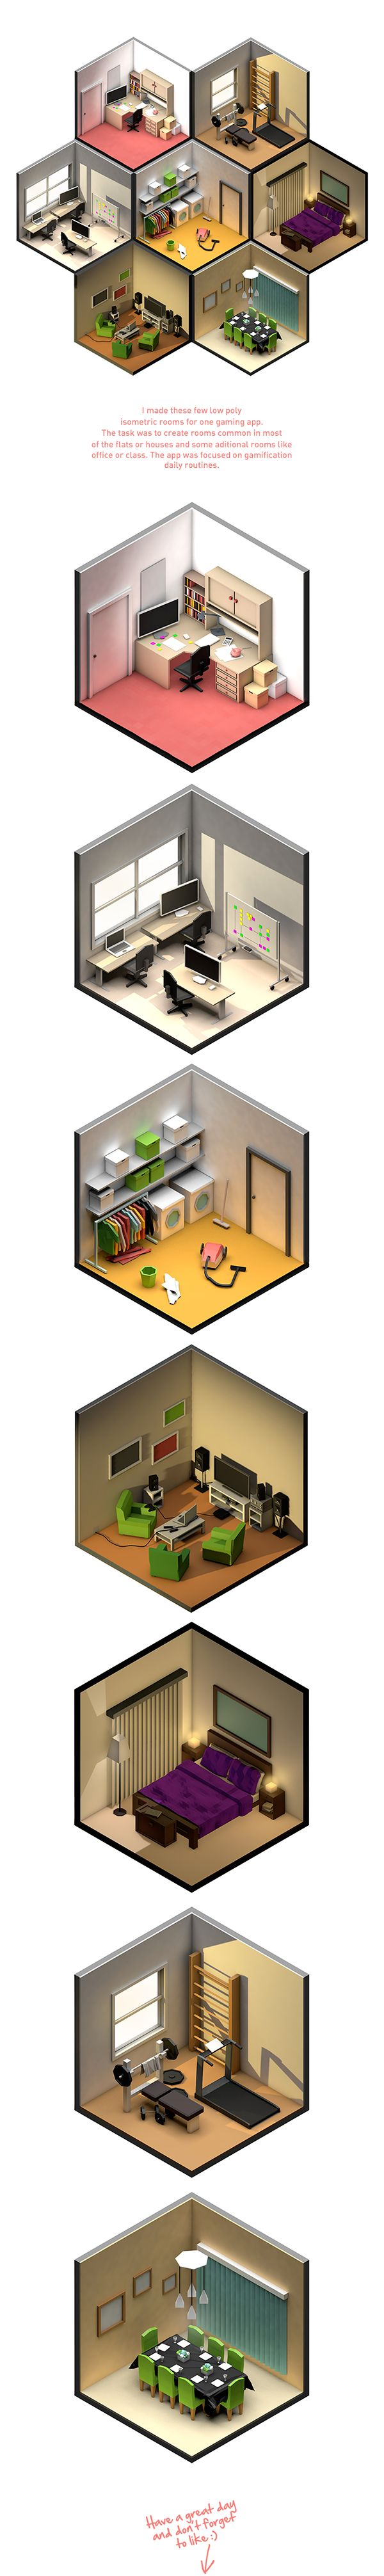 3D isometric illustrations